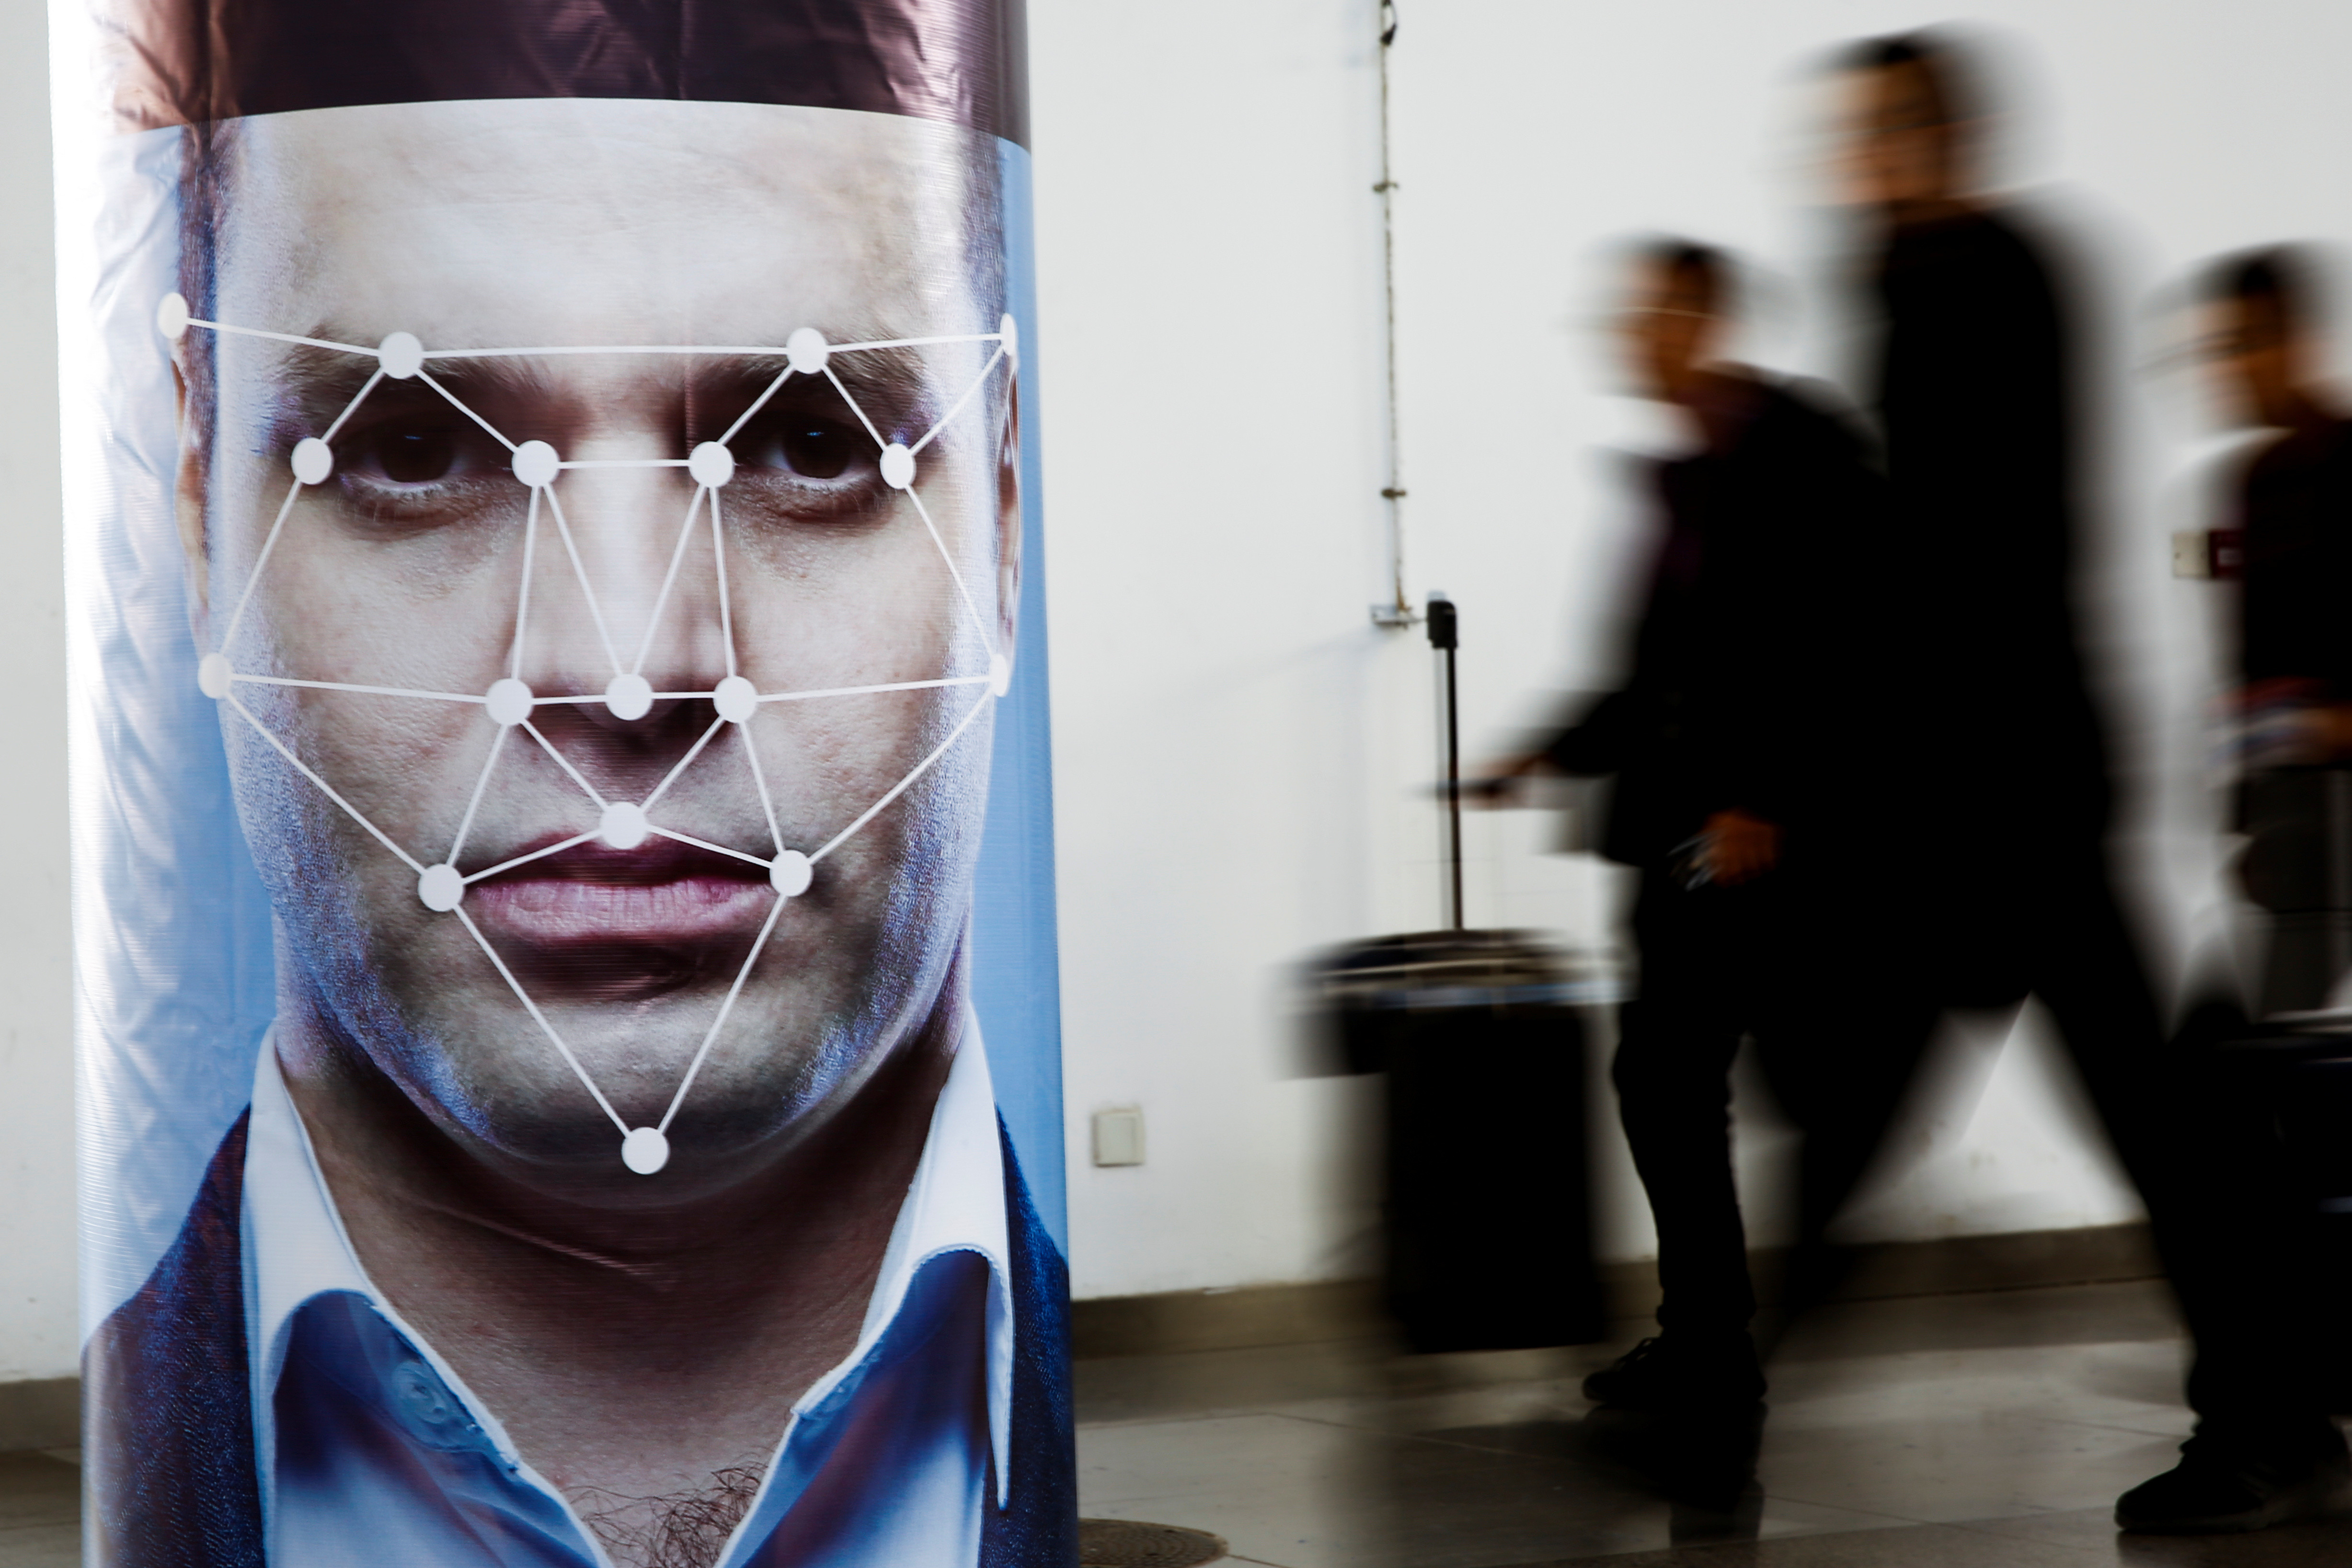 People walk past a poster advertising facial recognition software at a technology exhibition